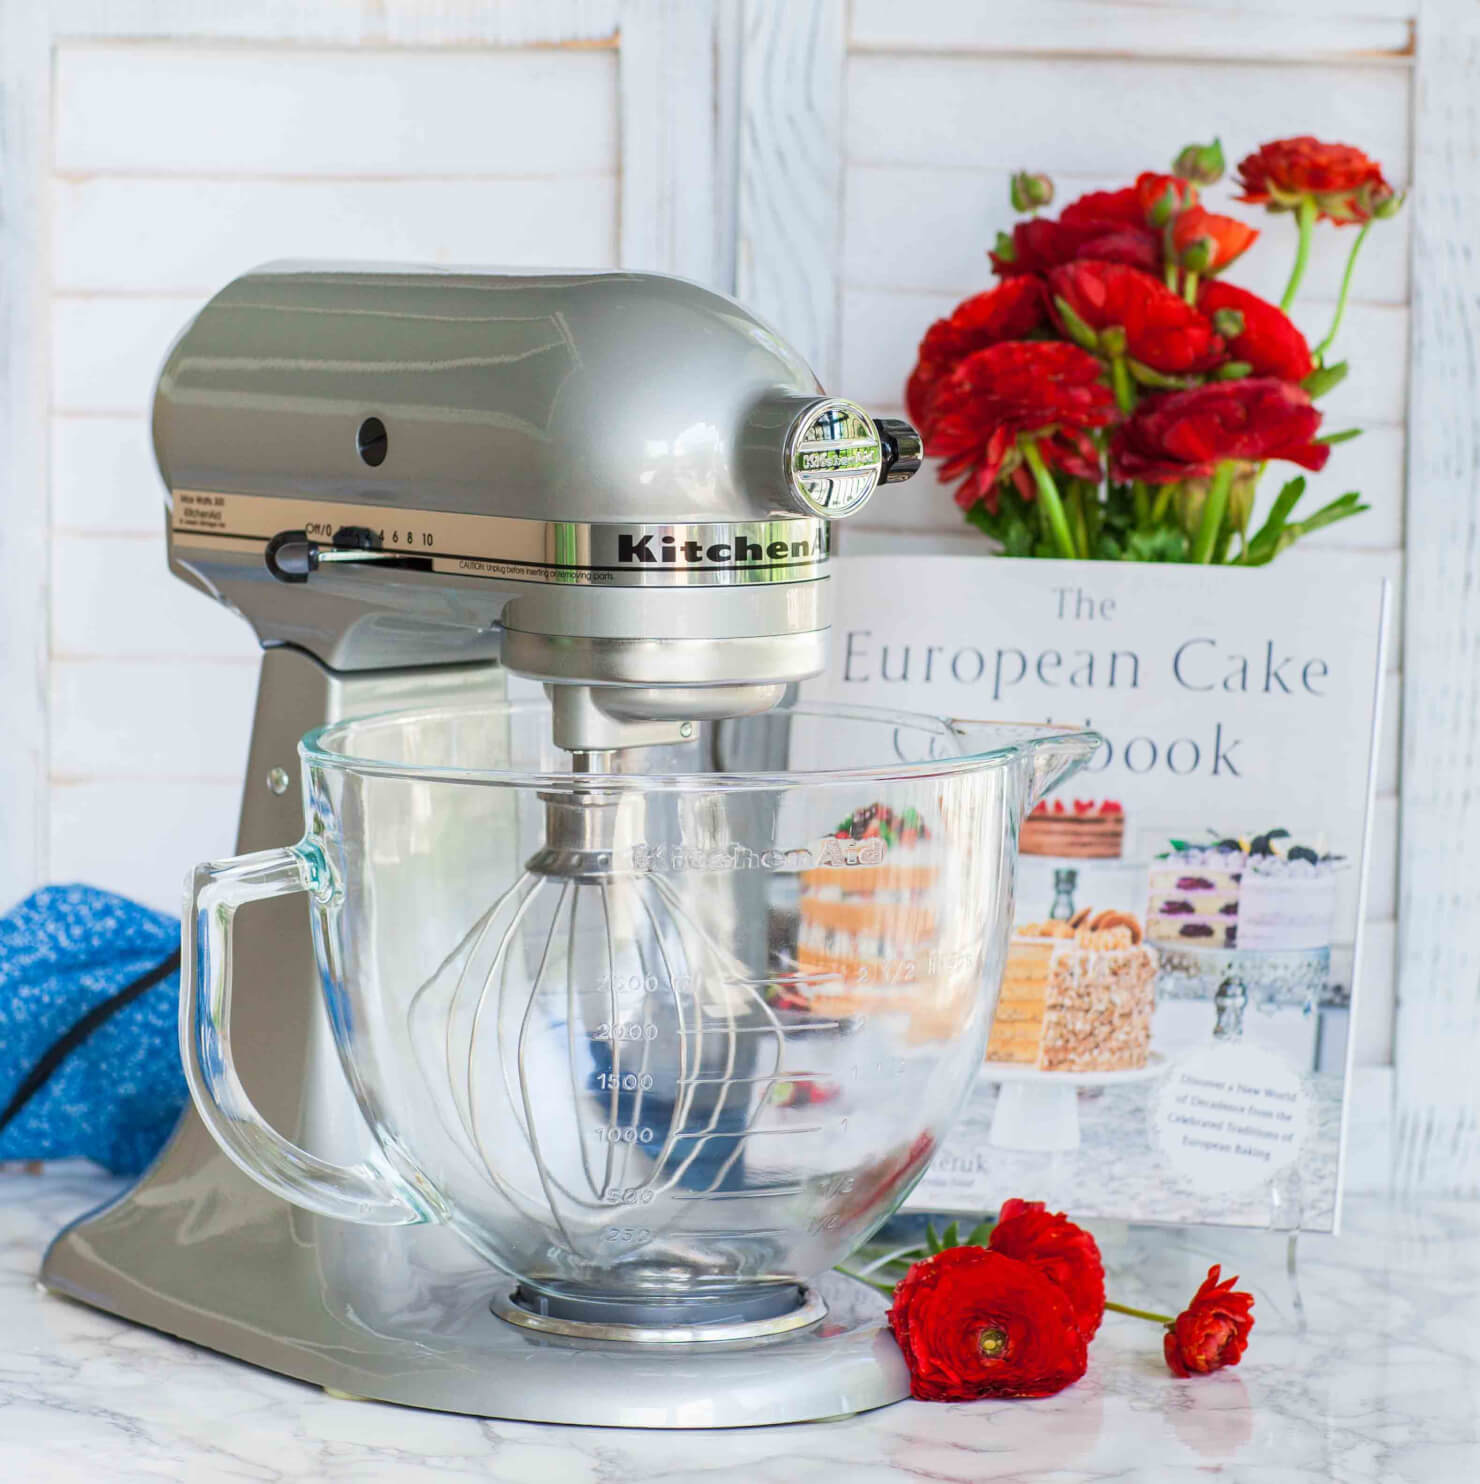 KitchenAid Mixer Giveaway +Signed Cookbook (Closed)